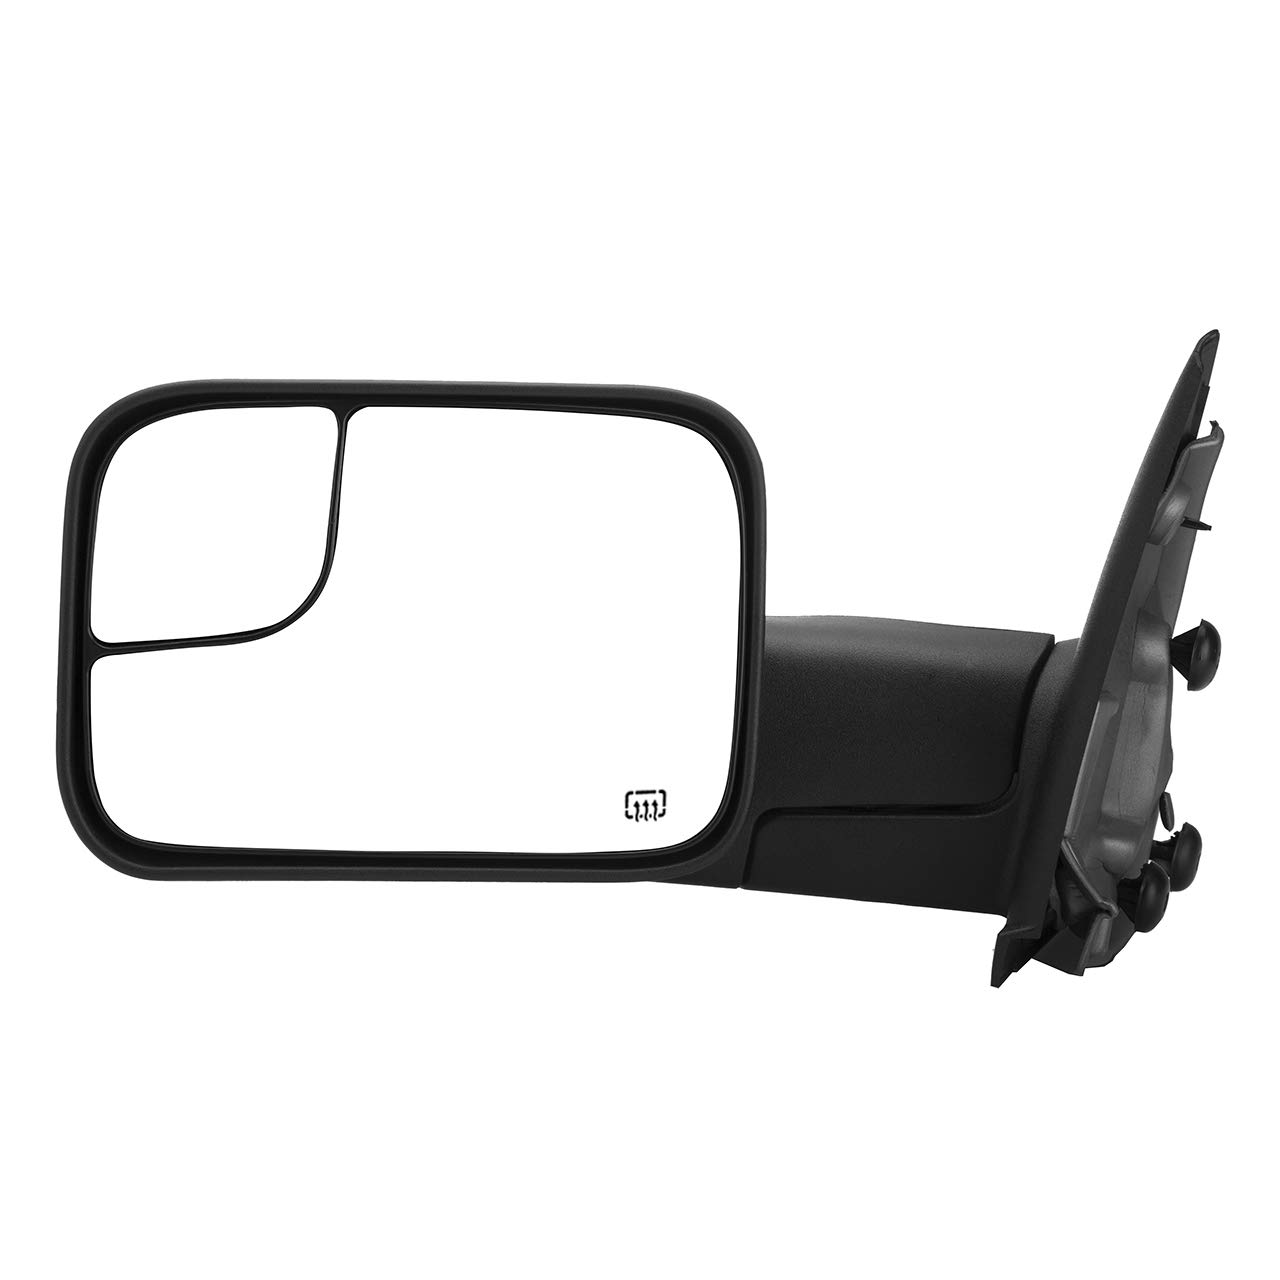 DEDC Dodge Tow Mirrors Dodge Ram Tow Mirrors Power Heated Manual Folding Driver Side For 2002-2008 1500 2003-2009 2500 3500